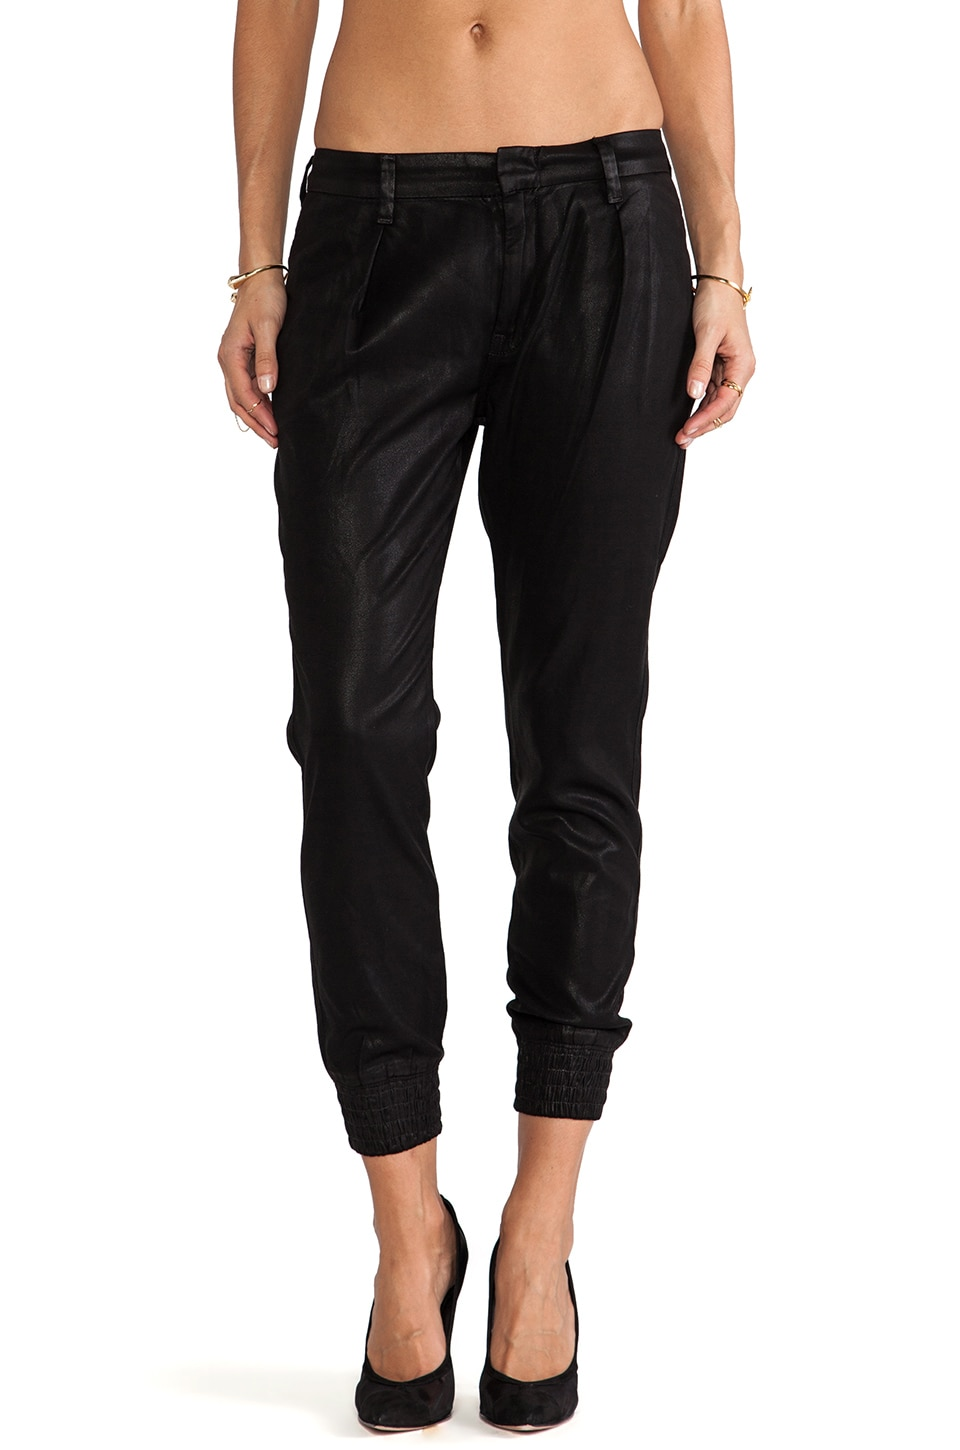 7 For All Mankind Drapey Pant w/ Smocked Hem in Black